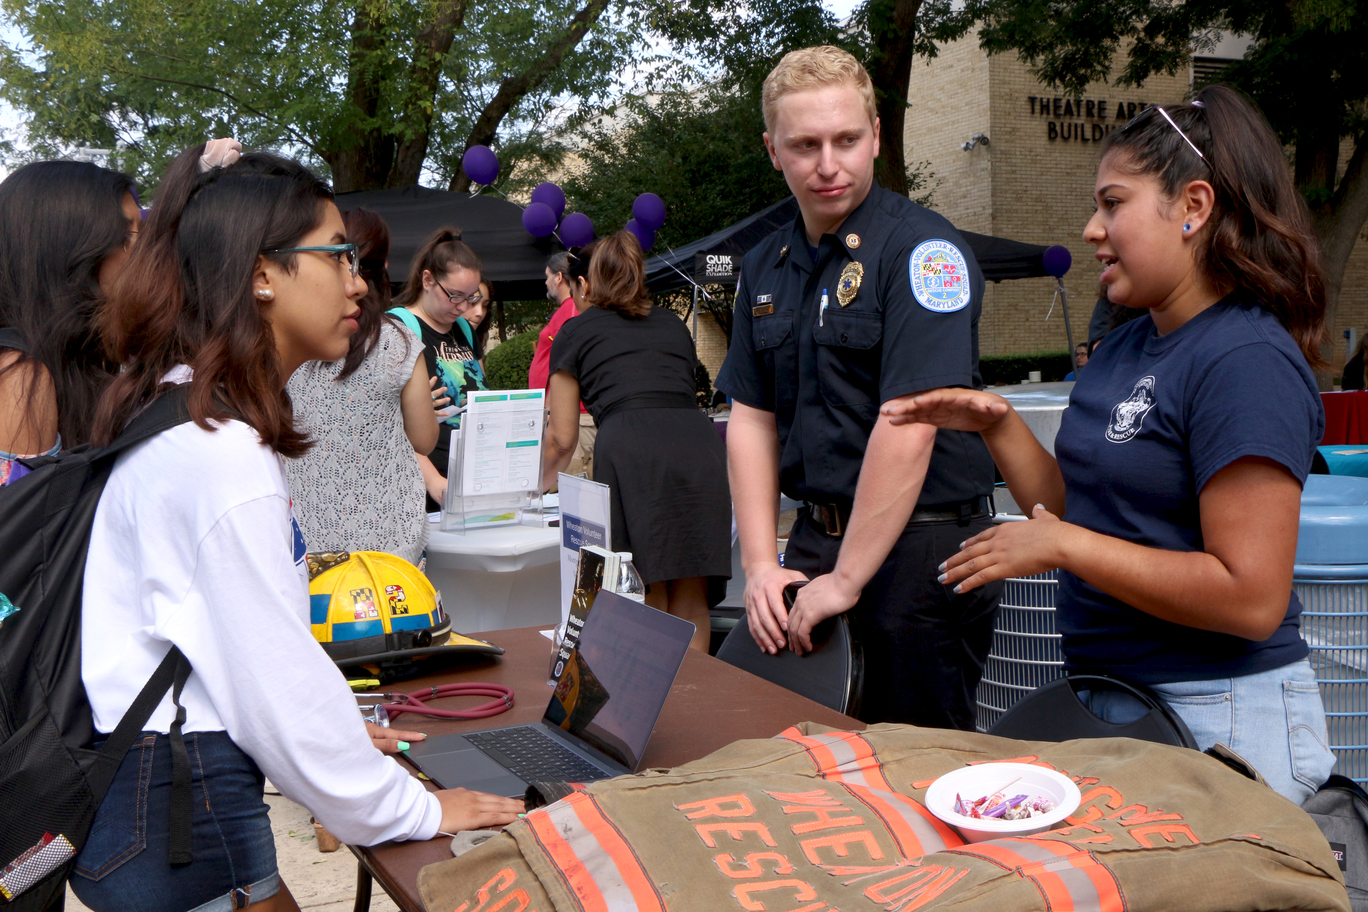 Left to right: Sasha Laredo, a pre-nursing freshman, discusses training opportunities with members of the Wheaton Volunteer Squad during the Student Life Give & Get Help Fair at Montgomery College Rockville Campus Sept. 19. The Wheaton Volunteer Squad offers free training to EMT and fire fighter volunteers.